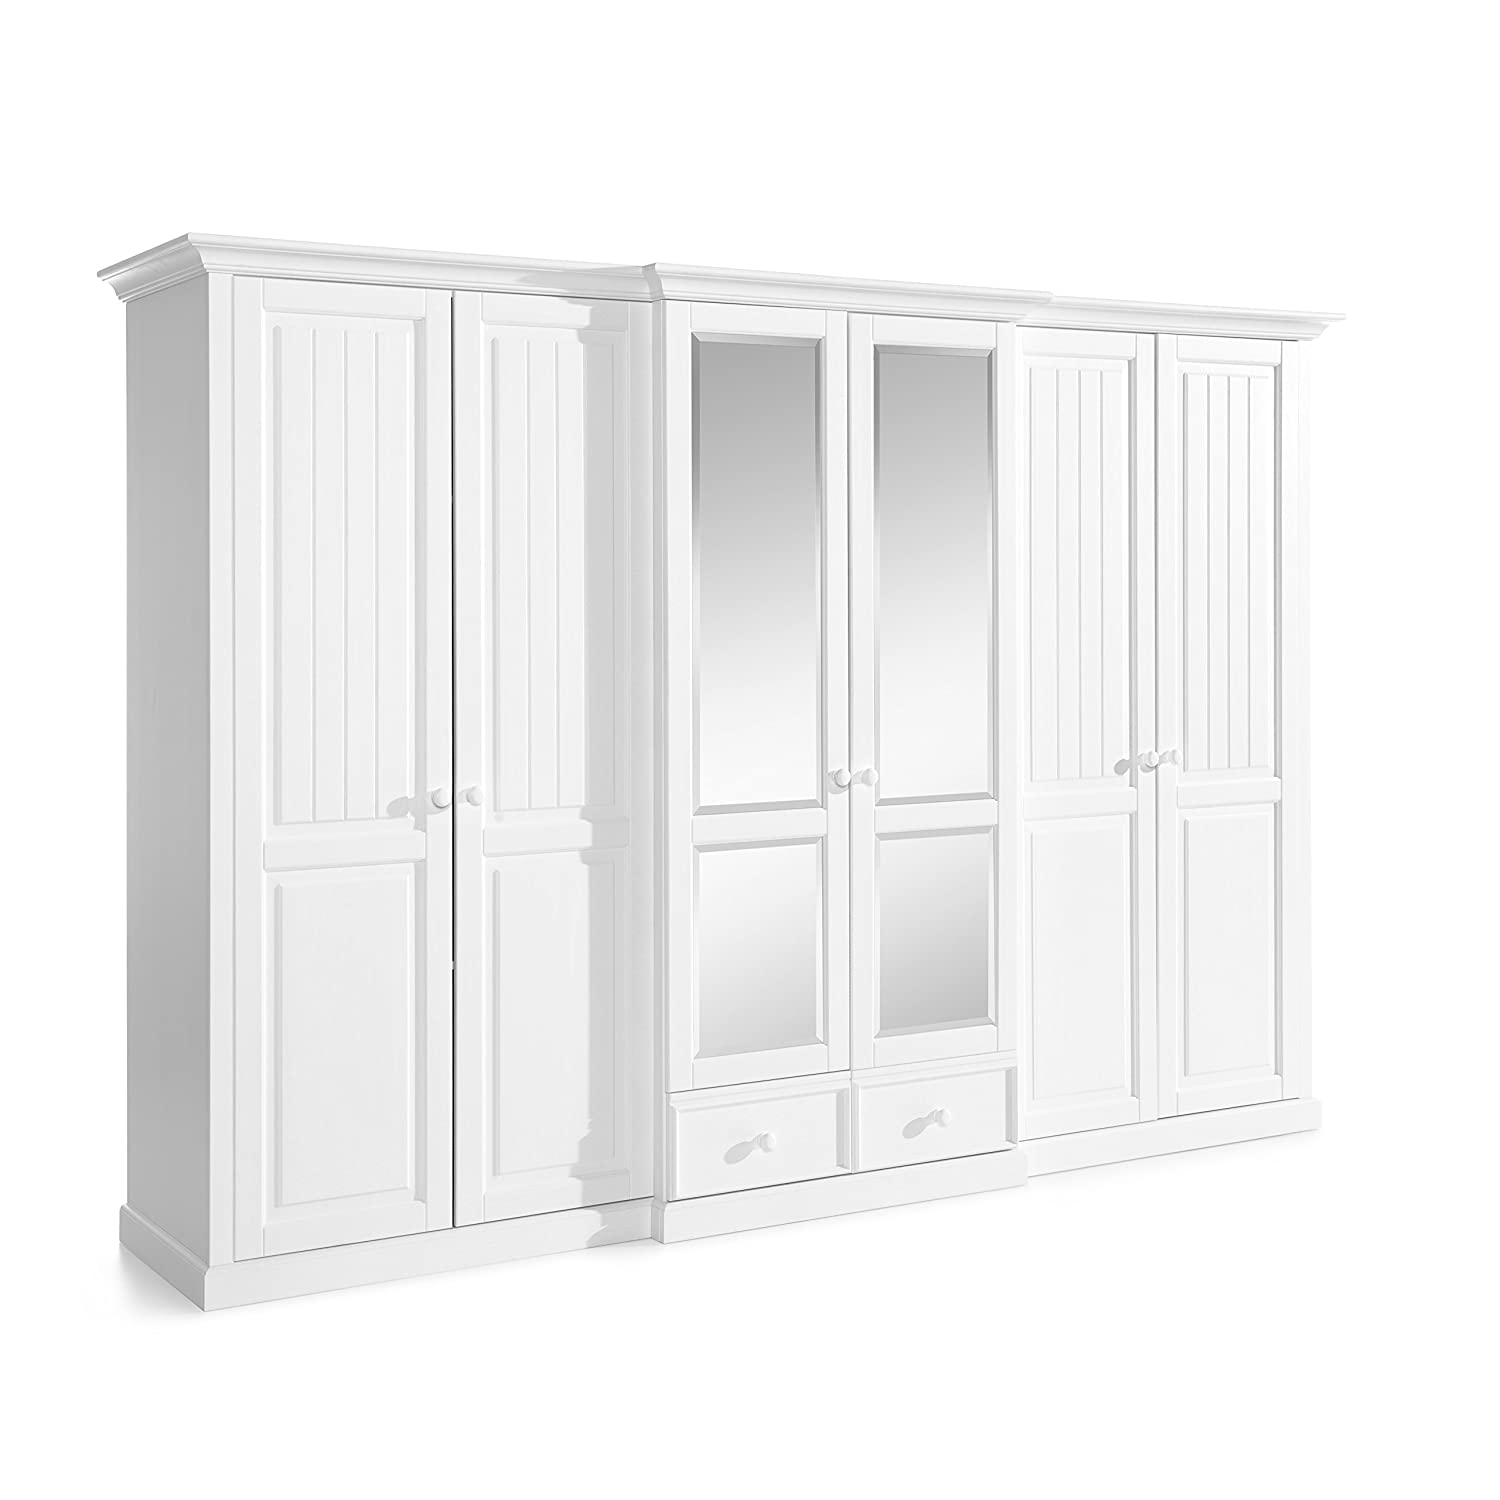 Firstloft 102-4600 Kleiderschrank